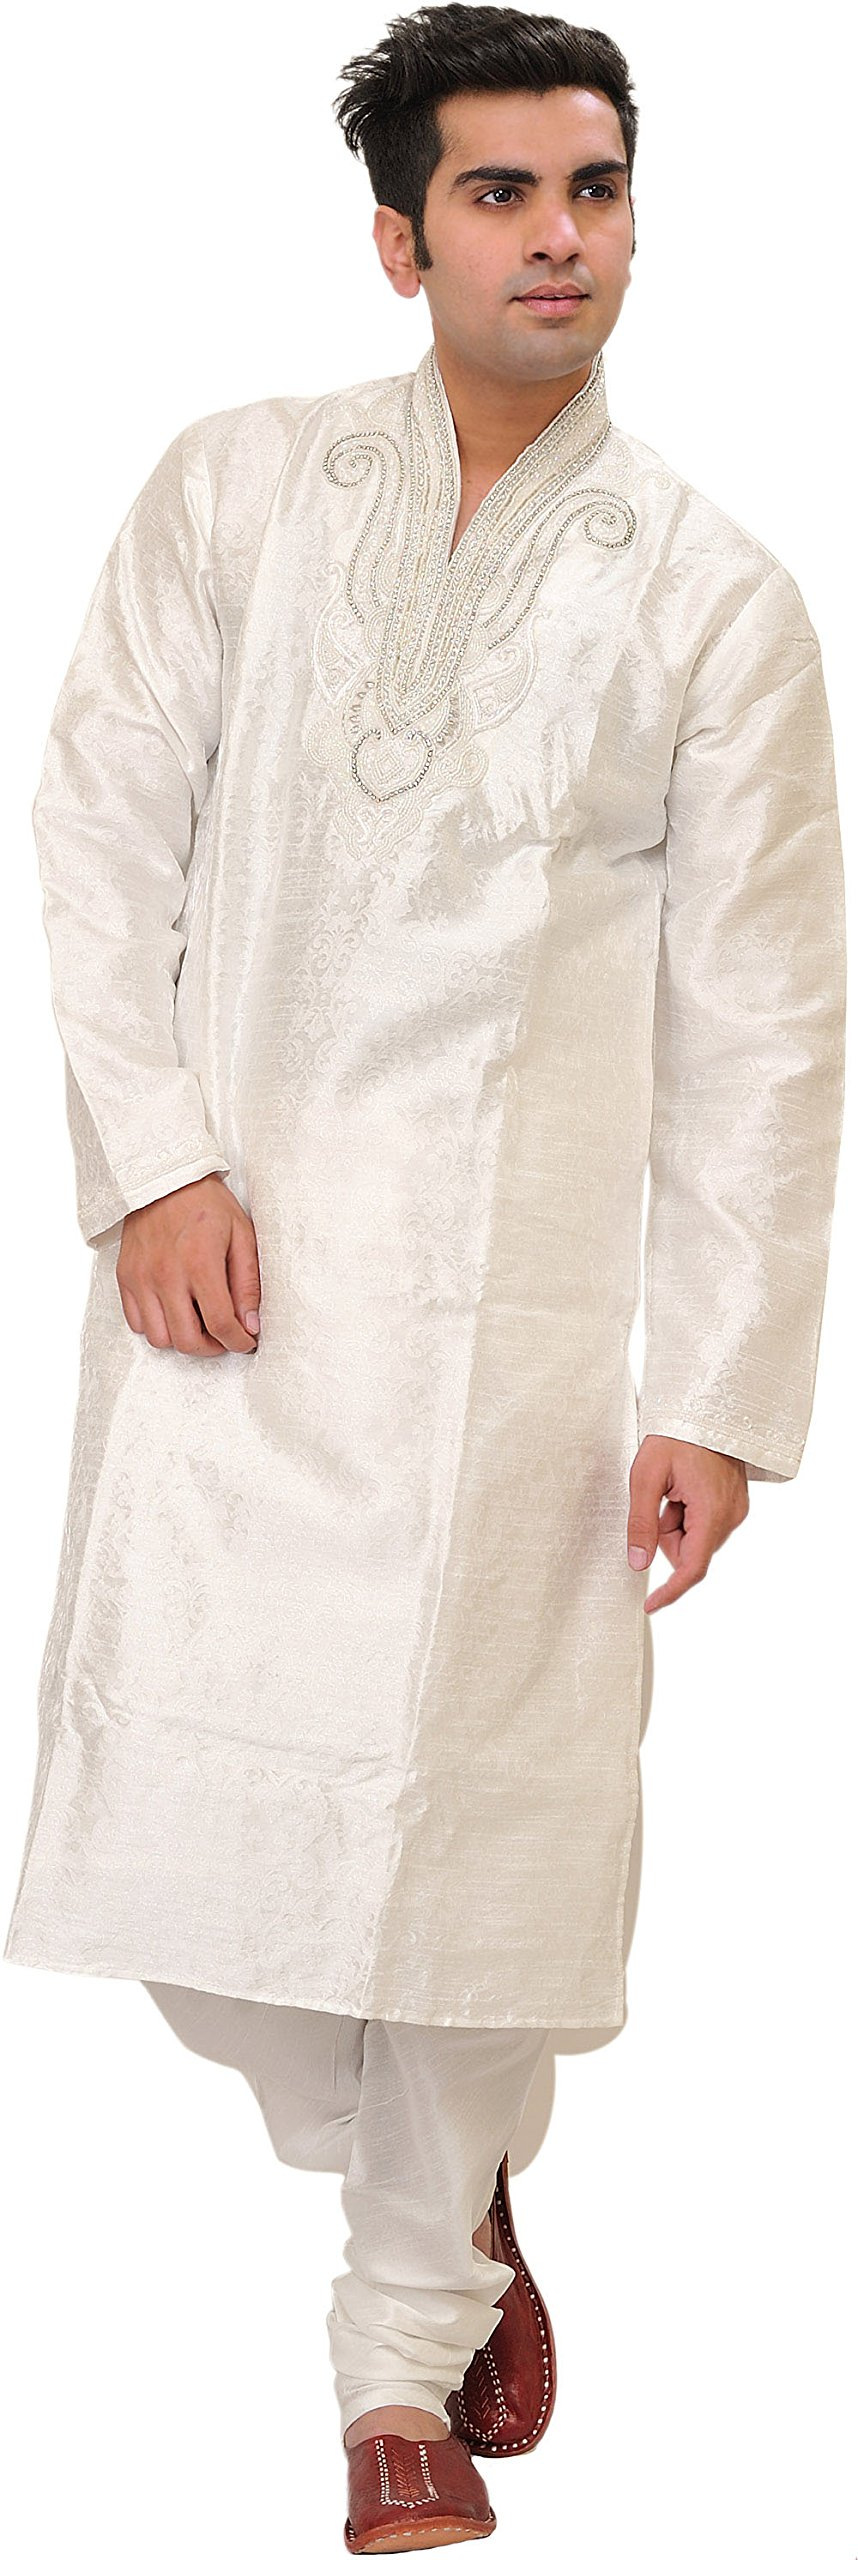 Exotic India Bright-White Wedding Kurta Pajama Set With Size 40